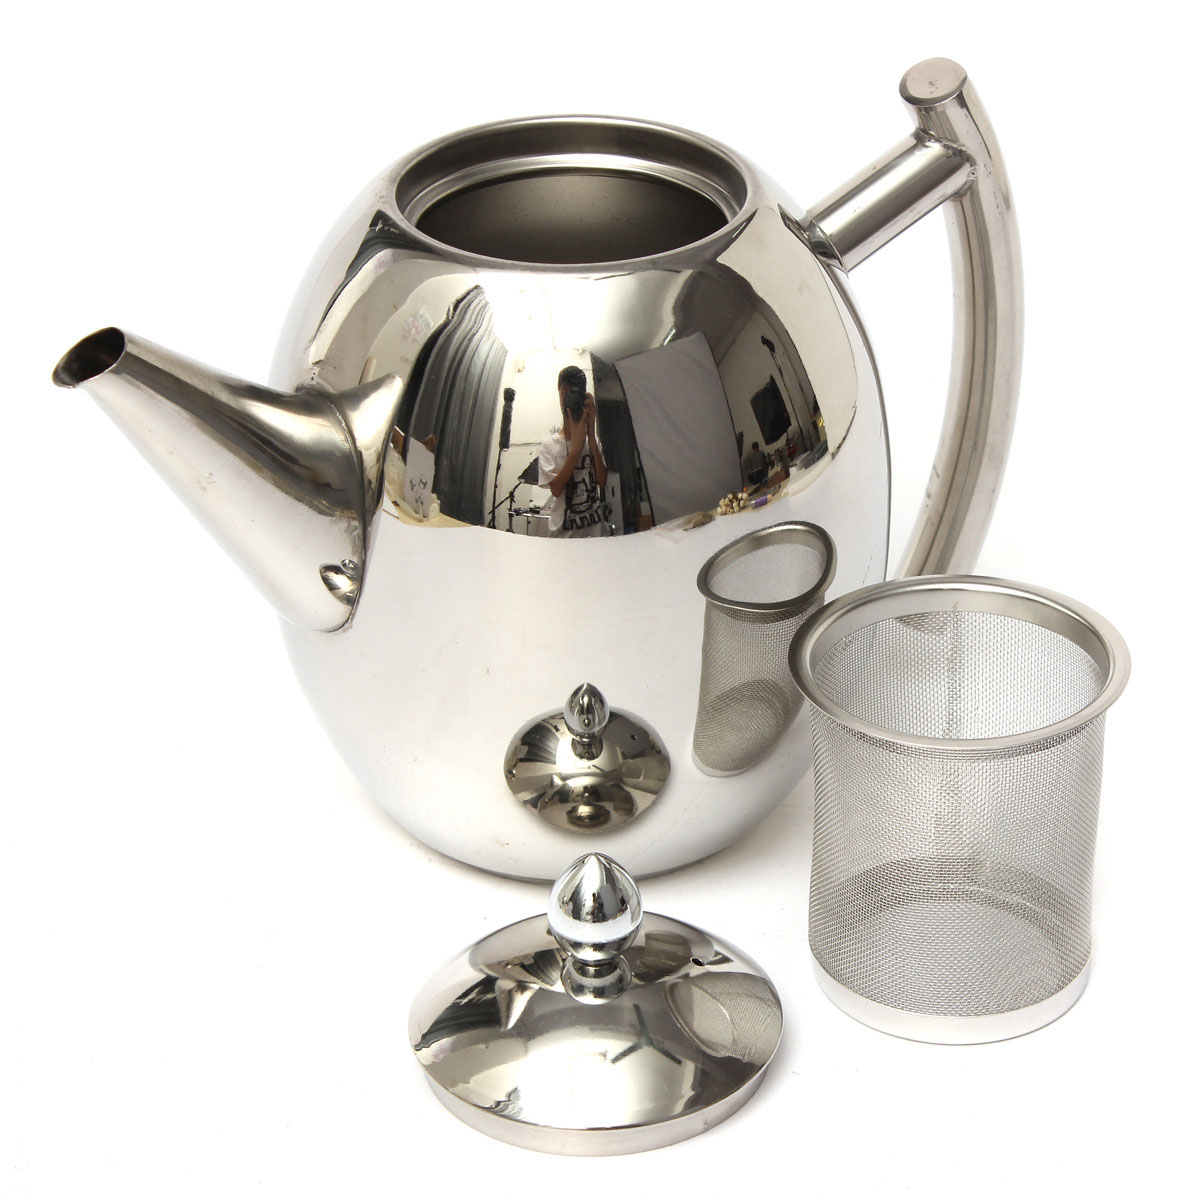 1000ml Stainless Steel Tea Coffee Pot Kettle With Strainer